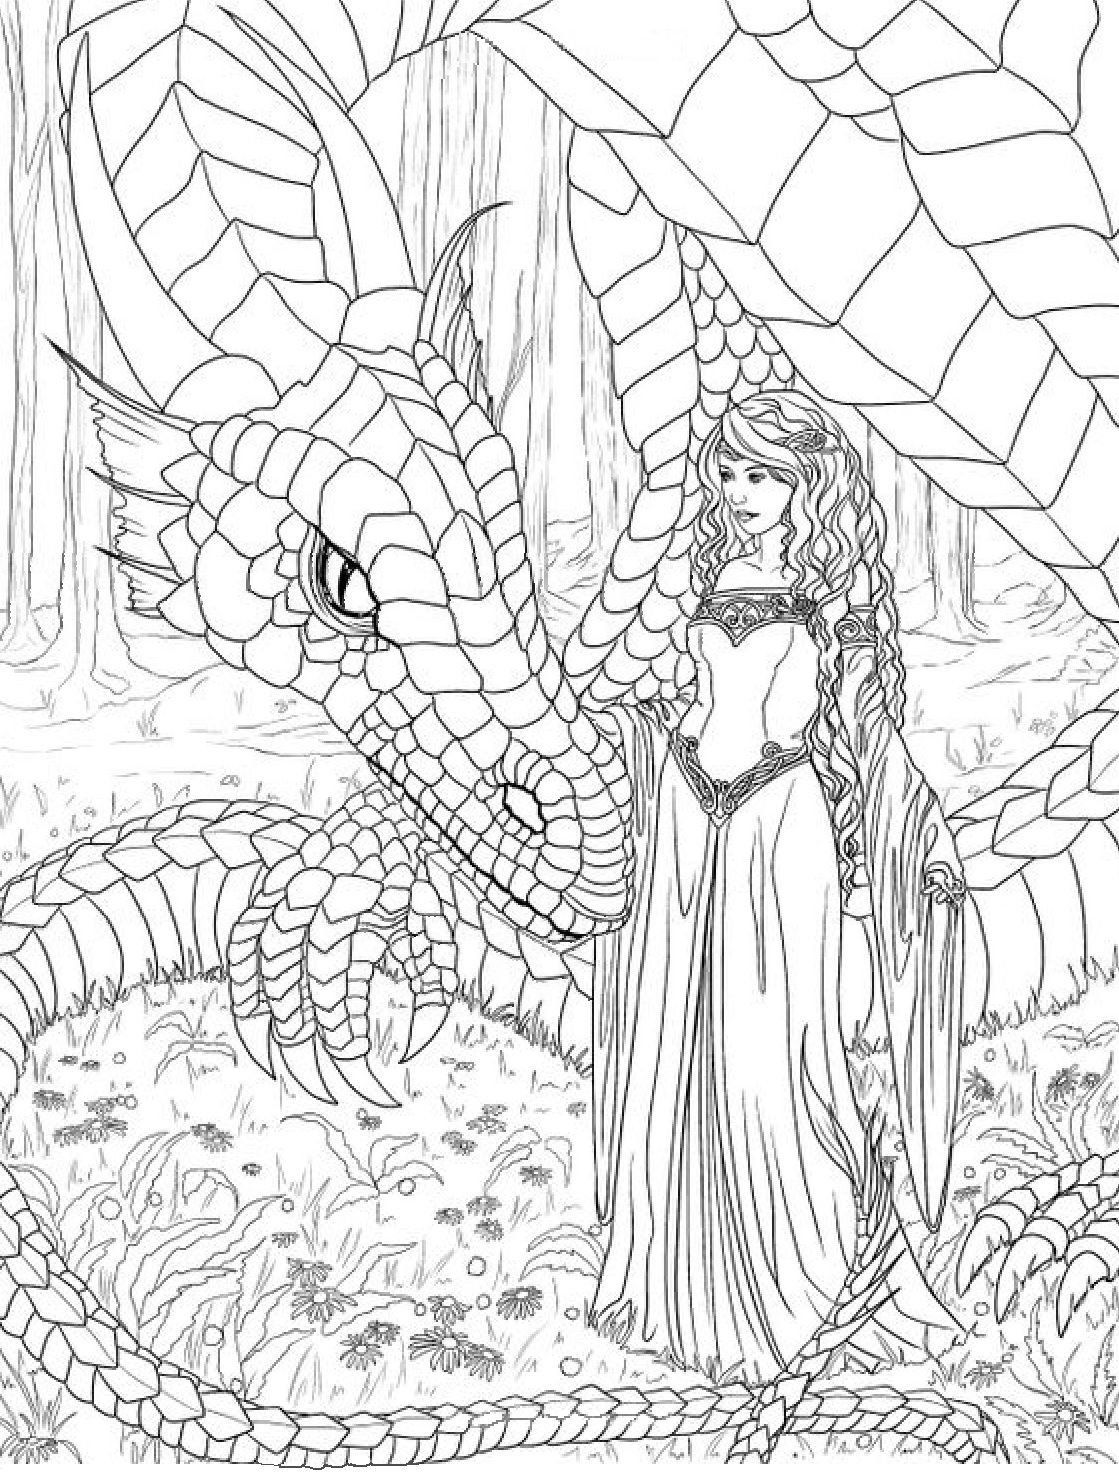 Dragon Coloring Pages For Adults Luxury Coloring Book Ideas Realistic Dragon Coloring Pages Fr Dragon Coloring Page Coloring Pages For Grown Ups Fairy Coloring